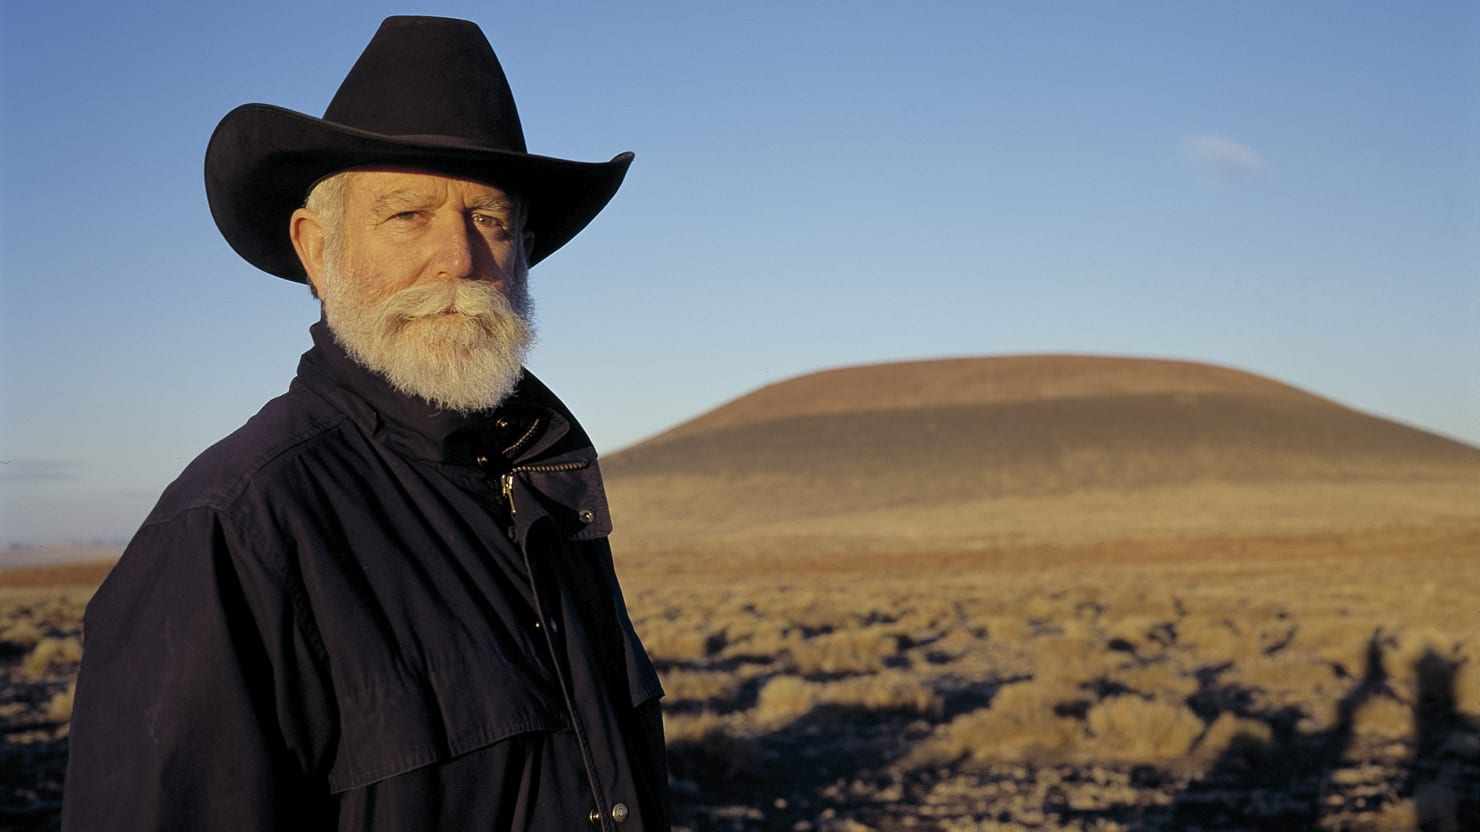 James Turrell: Looking Back at 50 Years of Illuminating Light as Art